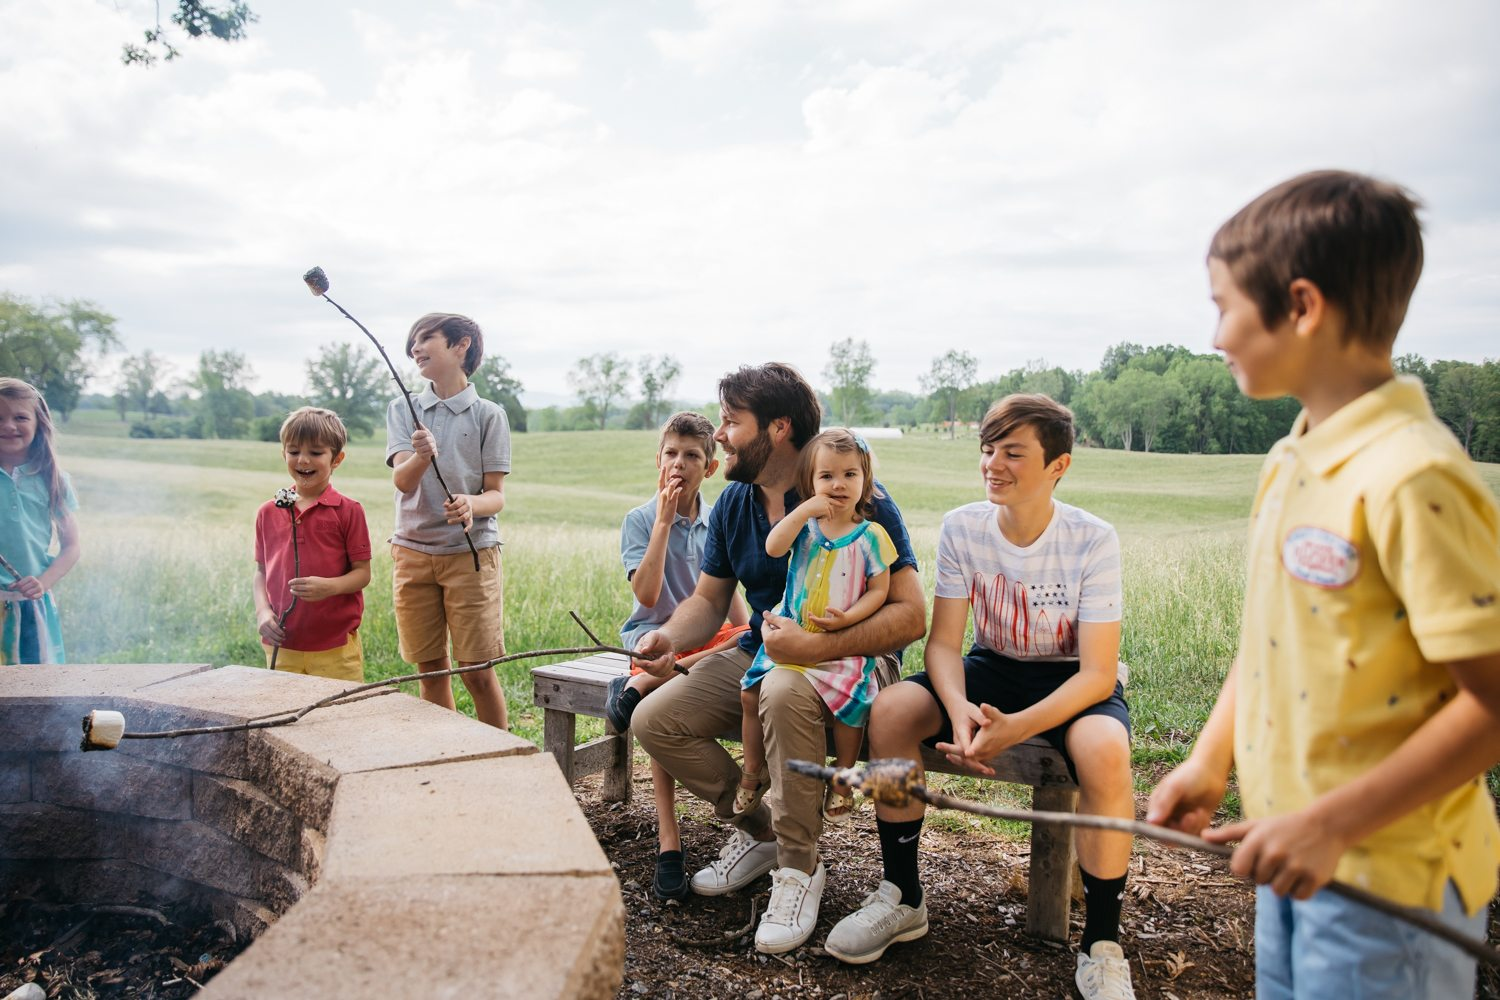 matthew chambers roasting marshmellows in an open field with his kids in virginia